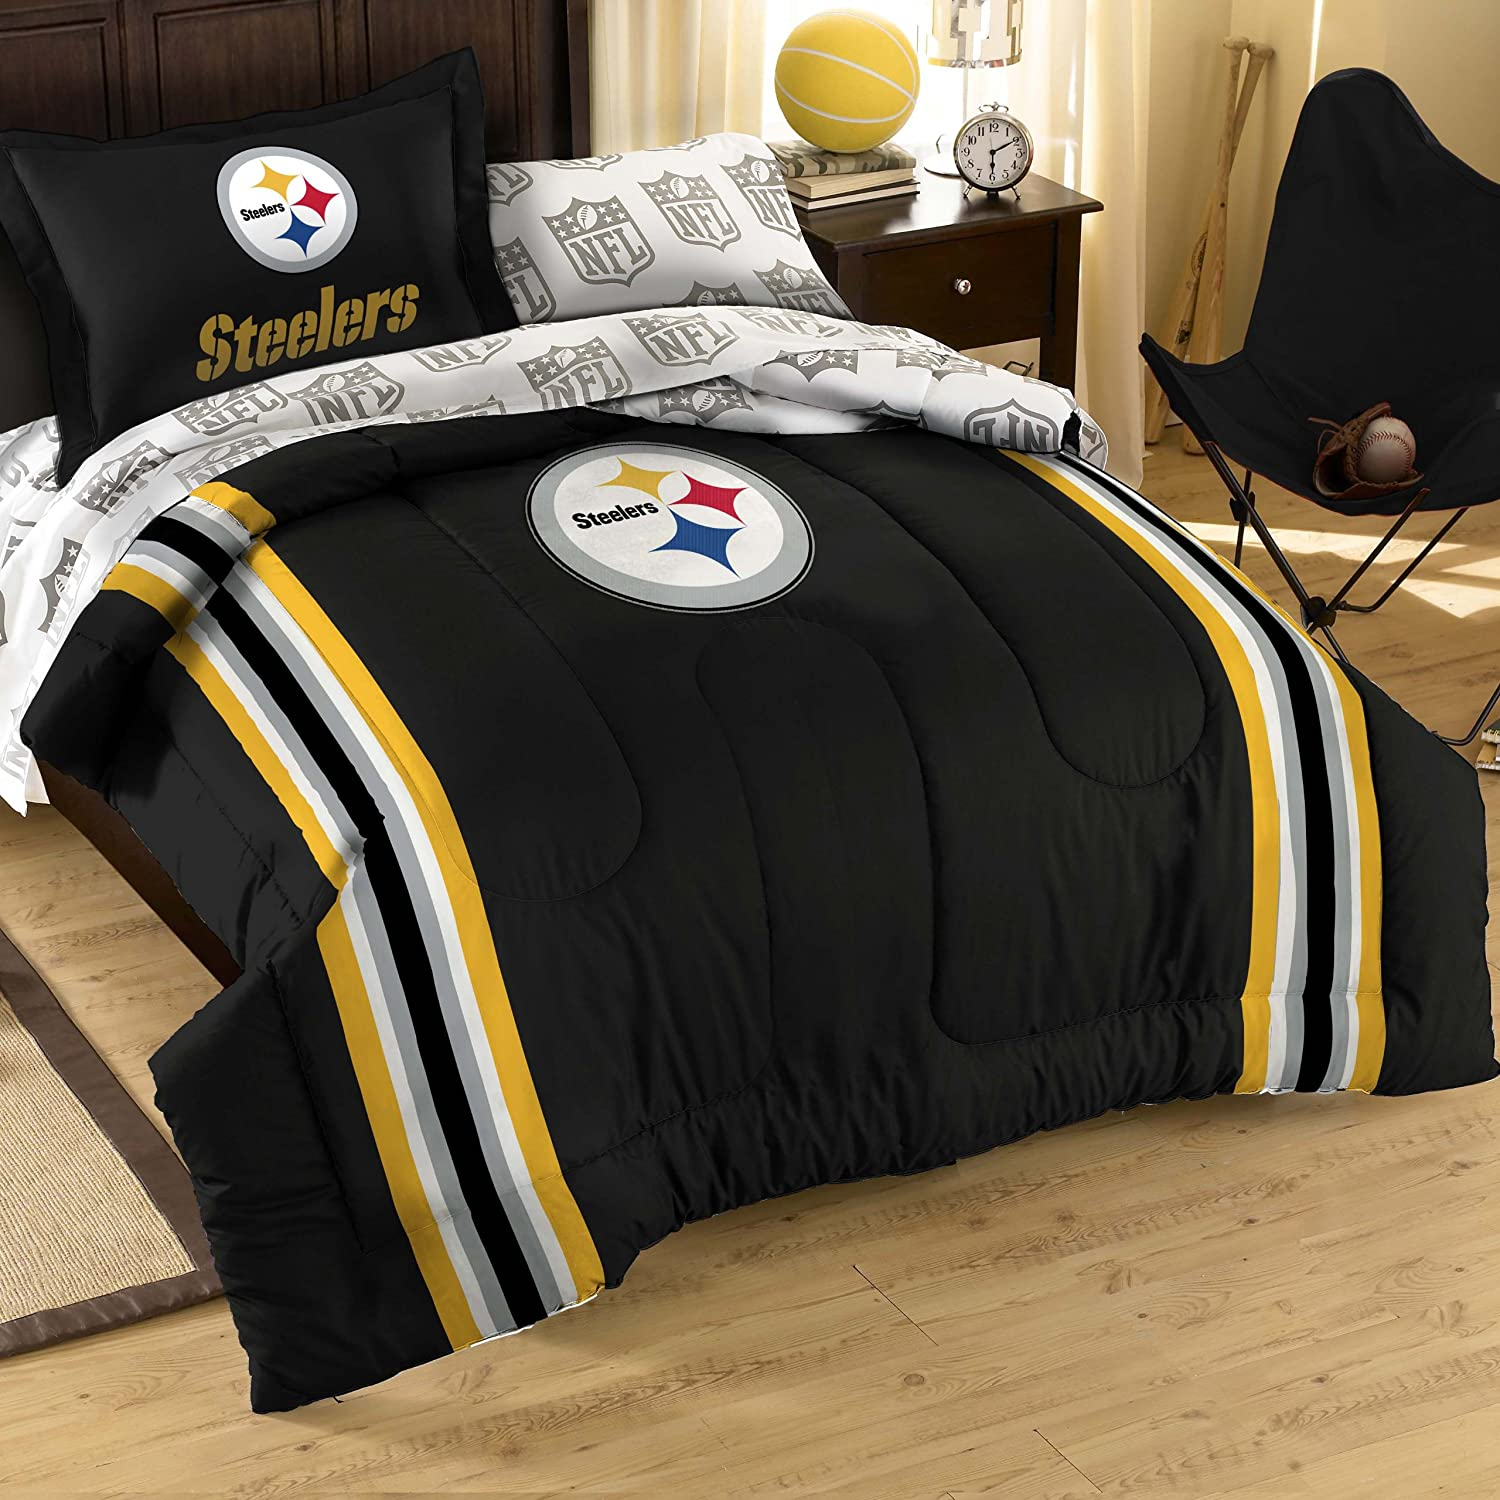 Nfl bedding for boys - Nfl Twin Size Bedding Set